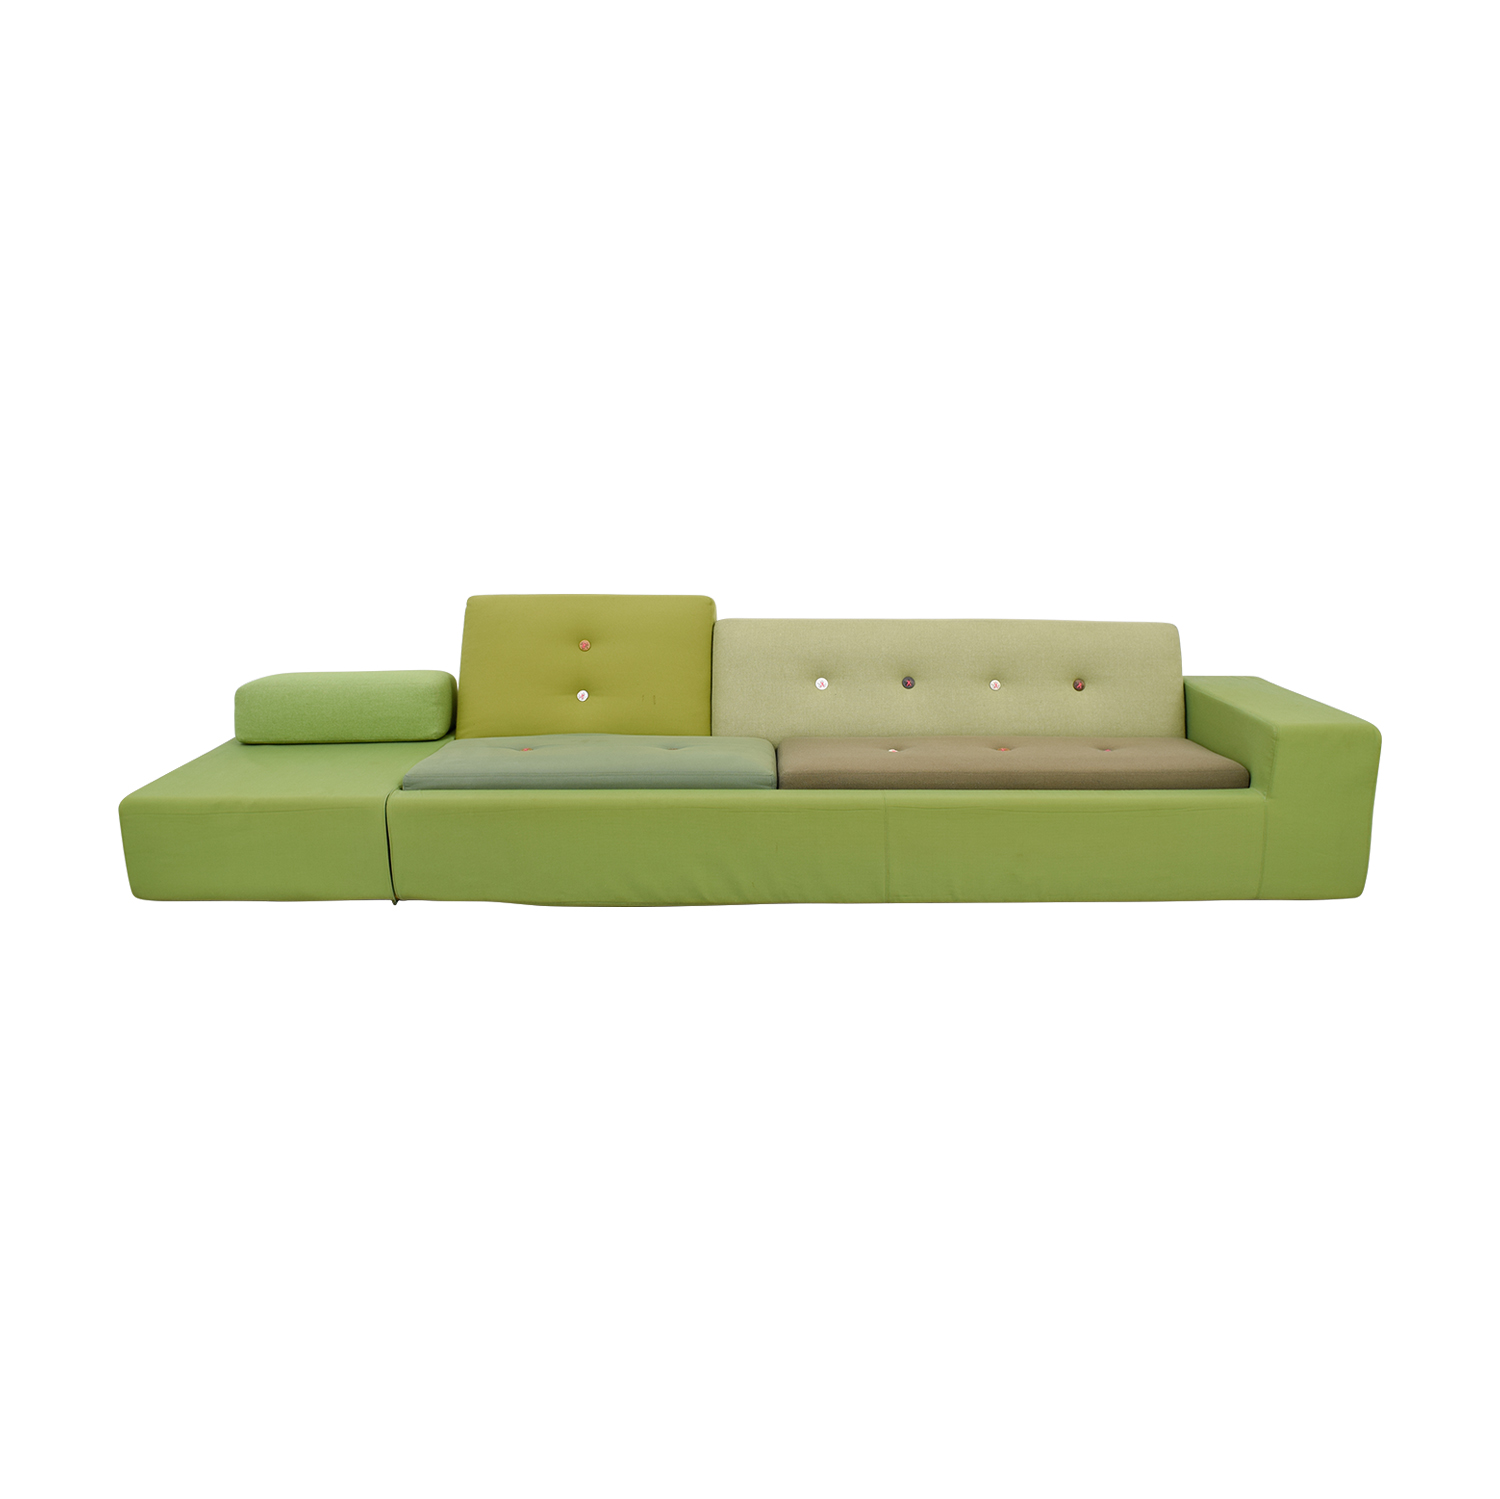 Vitra Vitra Polder Sofa by Hella Jongerius for sale